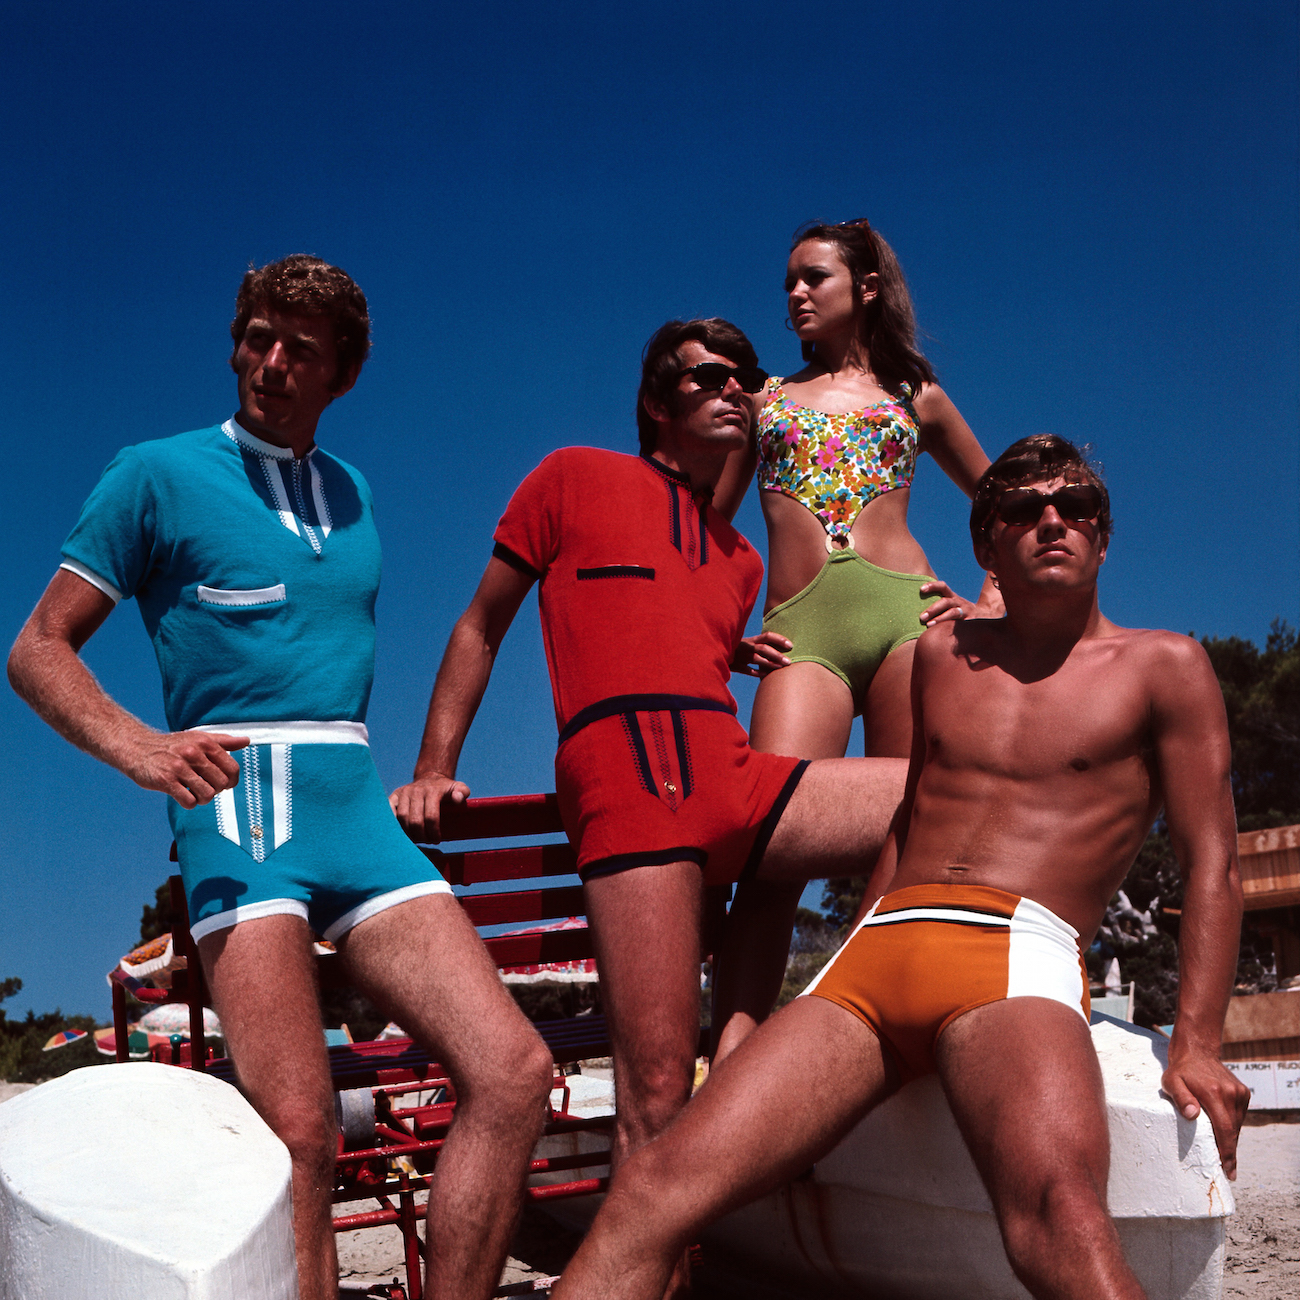 Retro Male and female swimsuit models, Group, Couples, Swimwear, 1970s